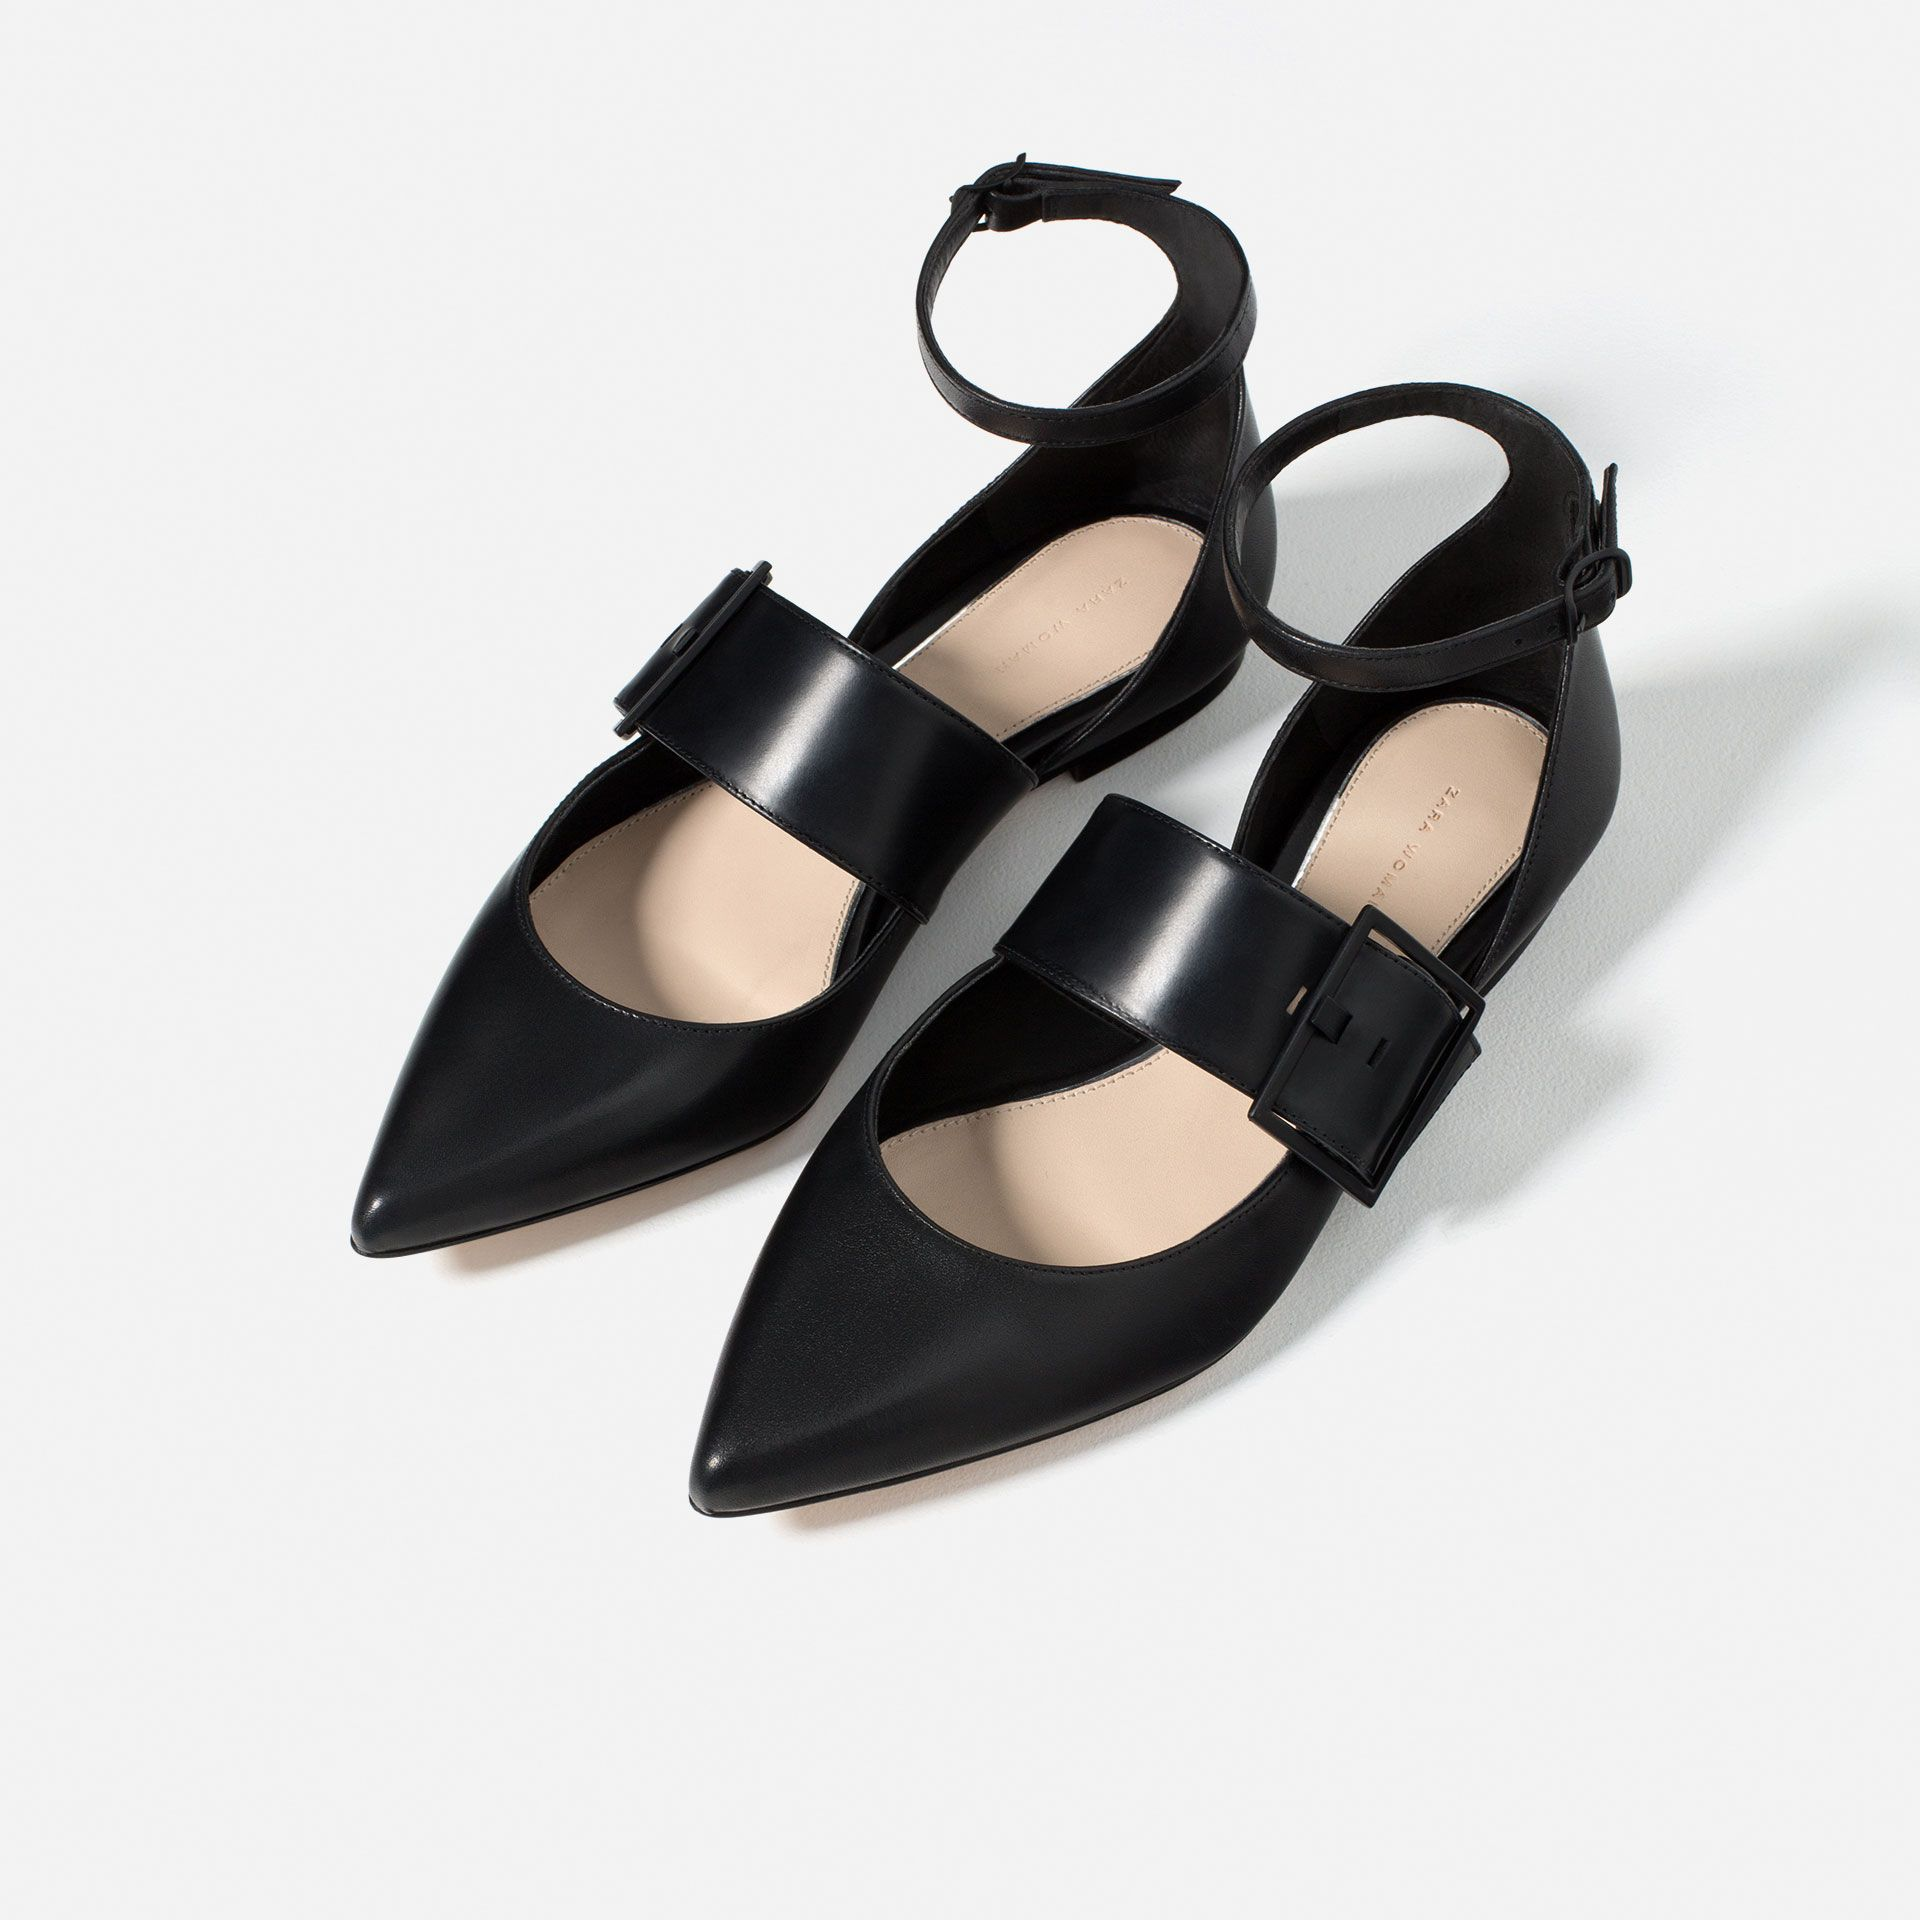 BUCKLED BALLET FLATS - Shoes and bags - WOMAN - NEW IN | ZARA United States